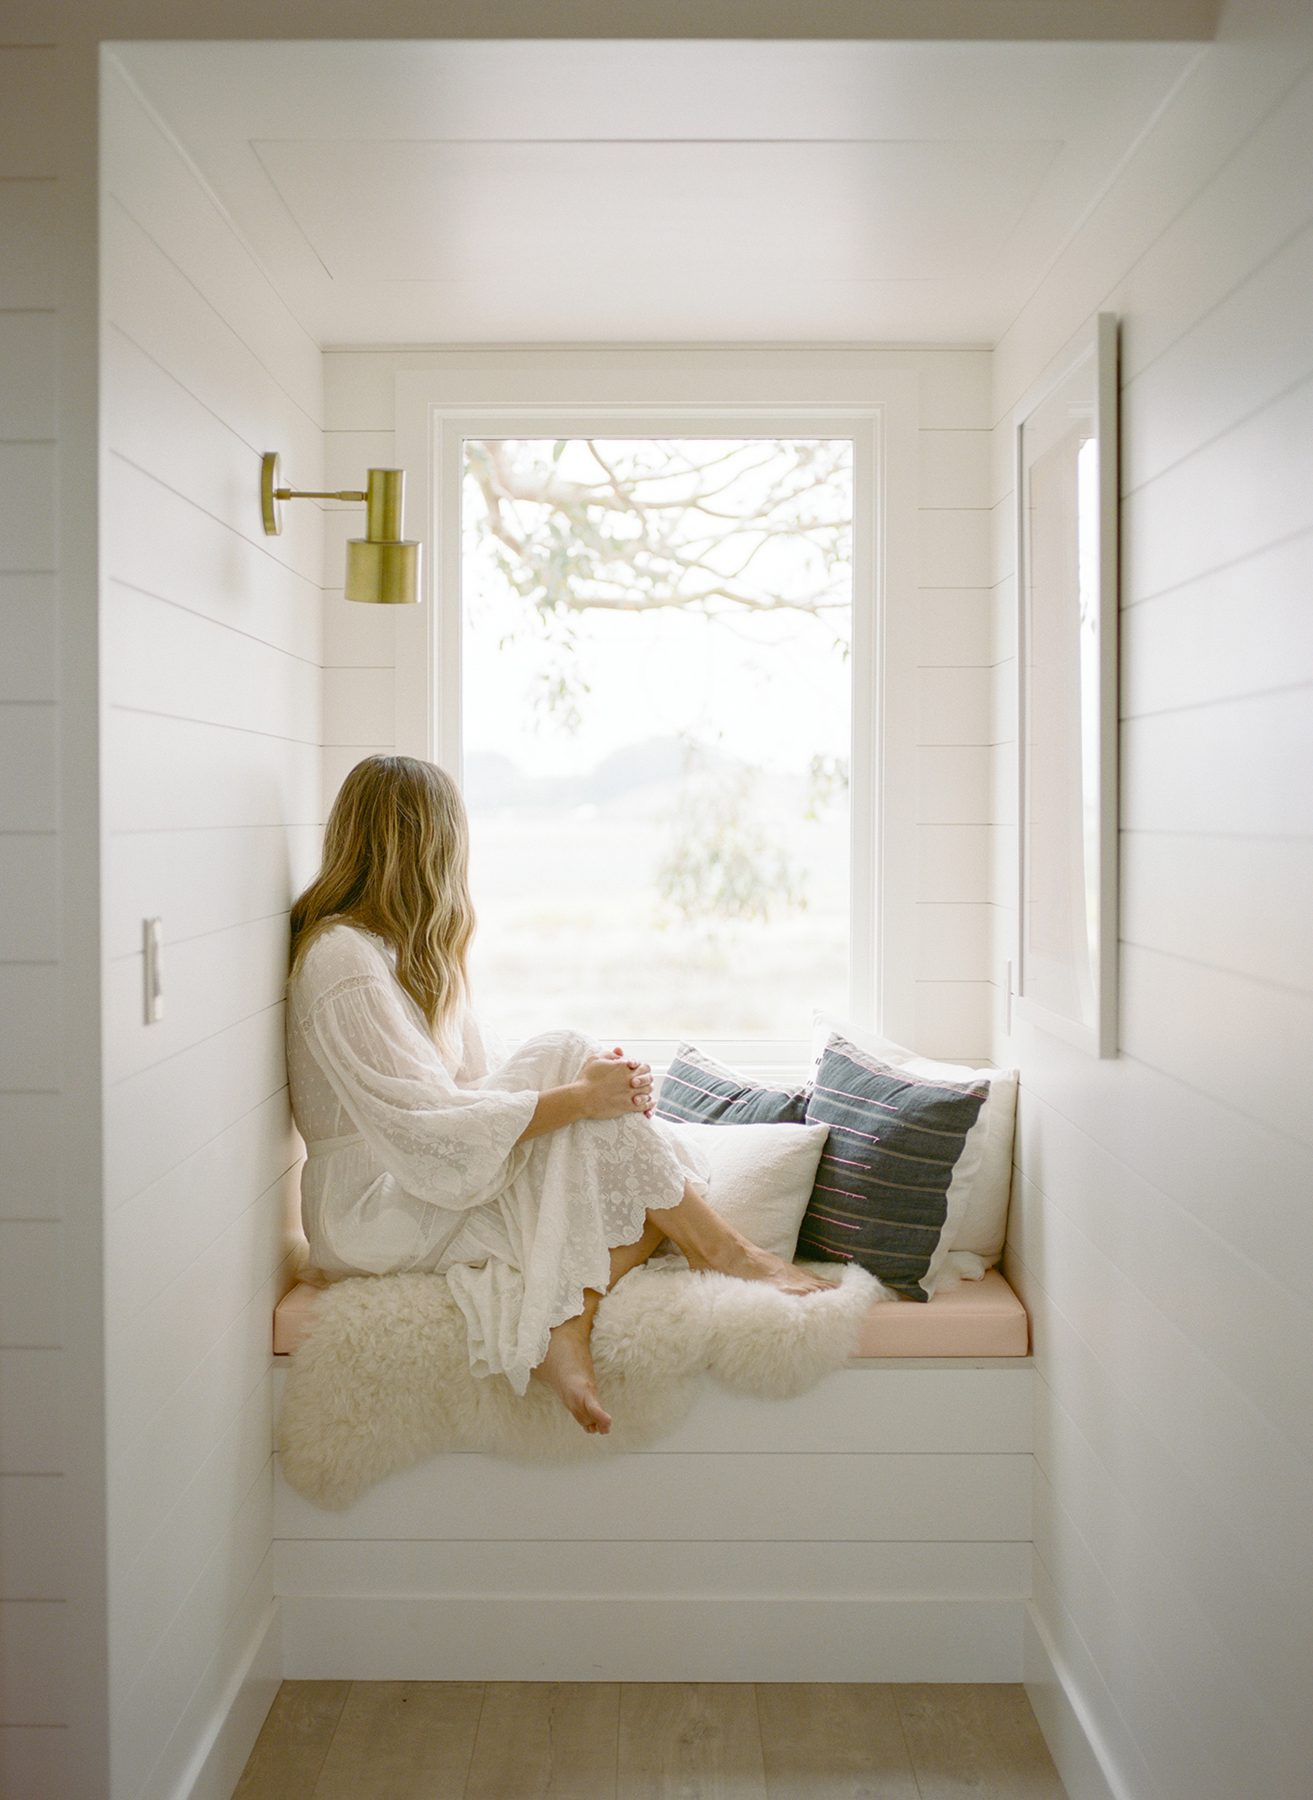 Lady sitting on a window seat looking out the window